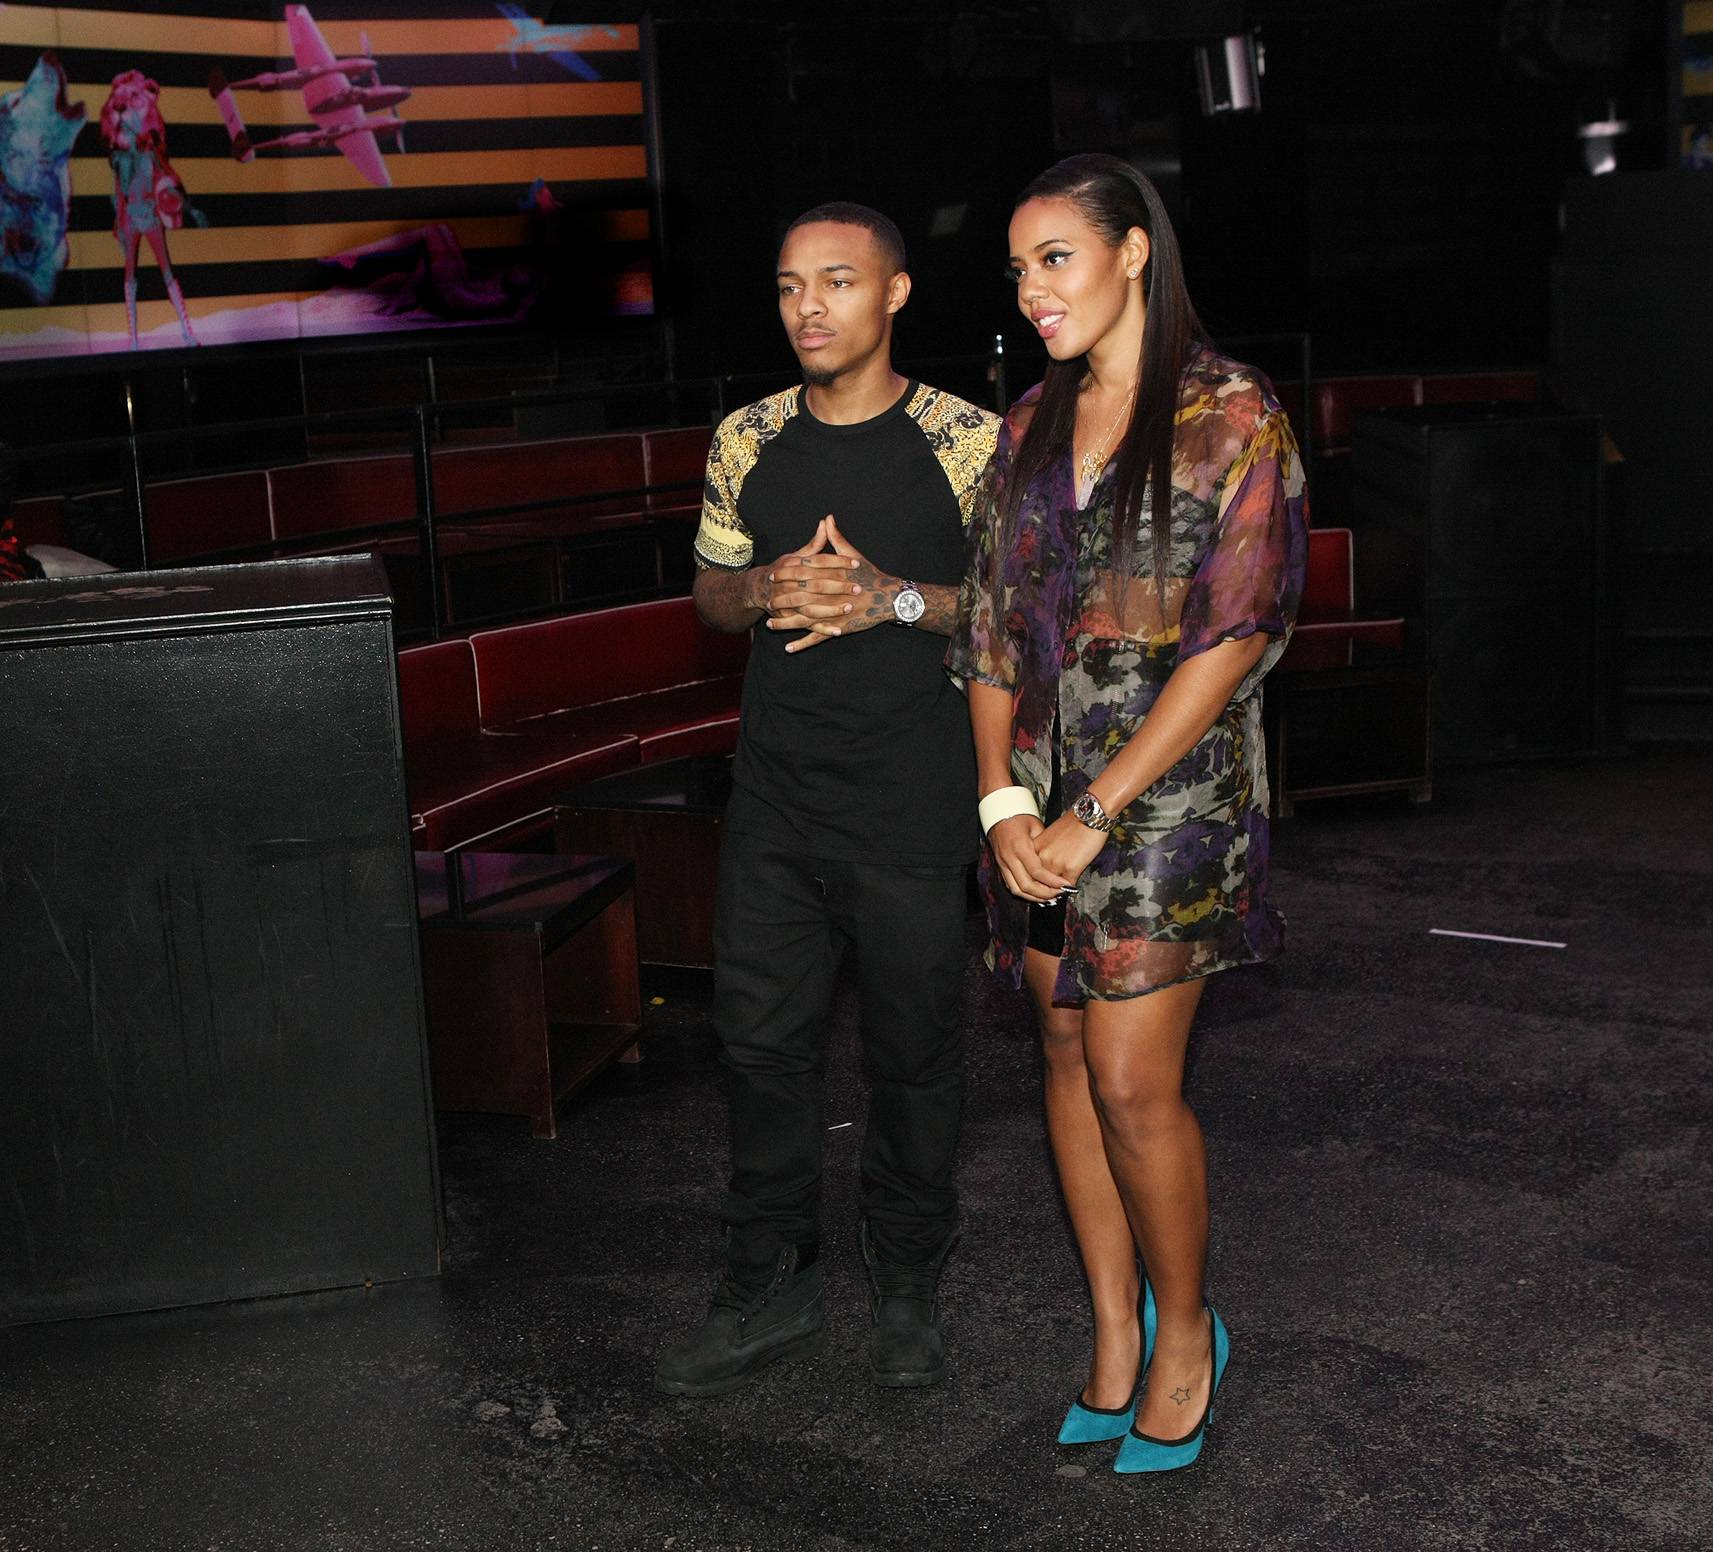 Grand Opening - Hosts Bow Wow and Angela Simmons get ready for their show opening. (Photo: Bennett Raglin/BET/Getty Images for BET)